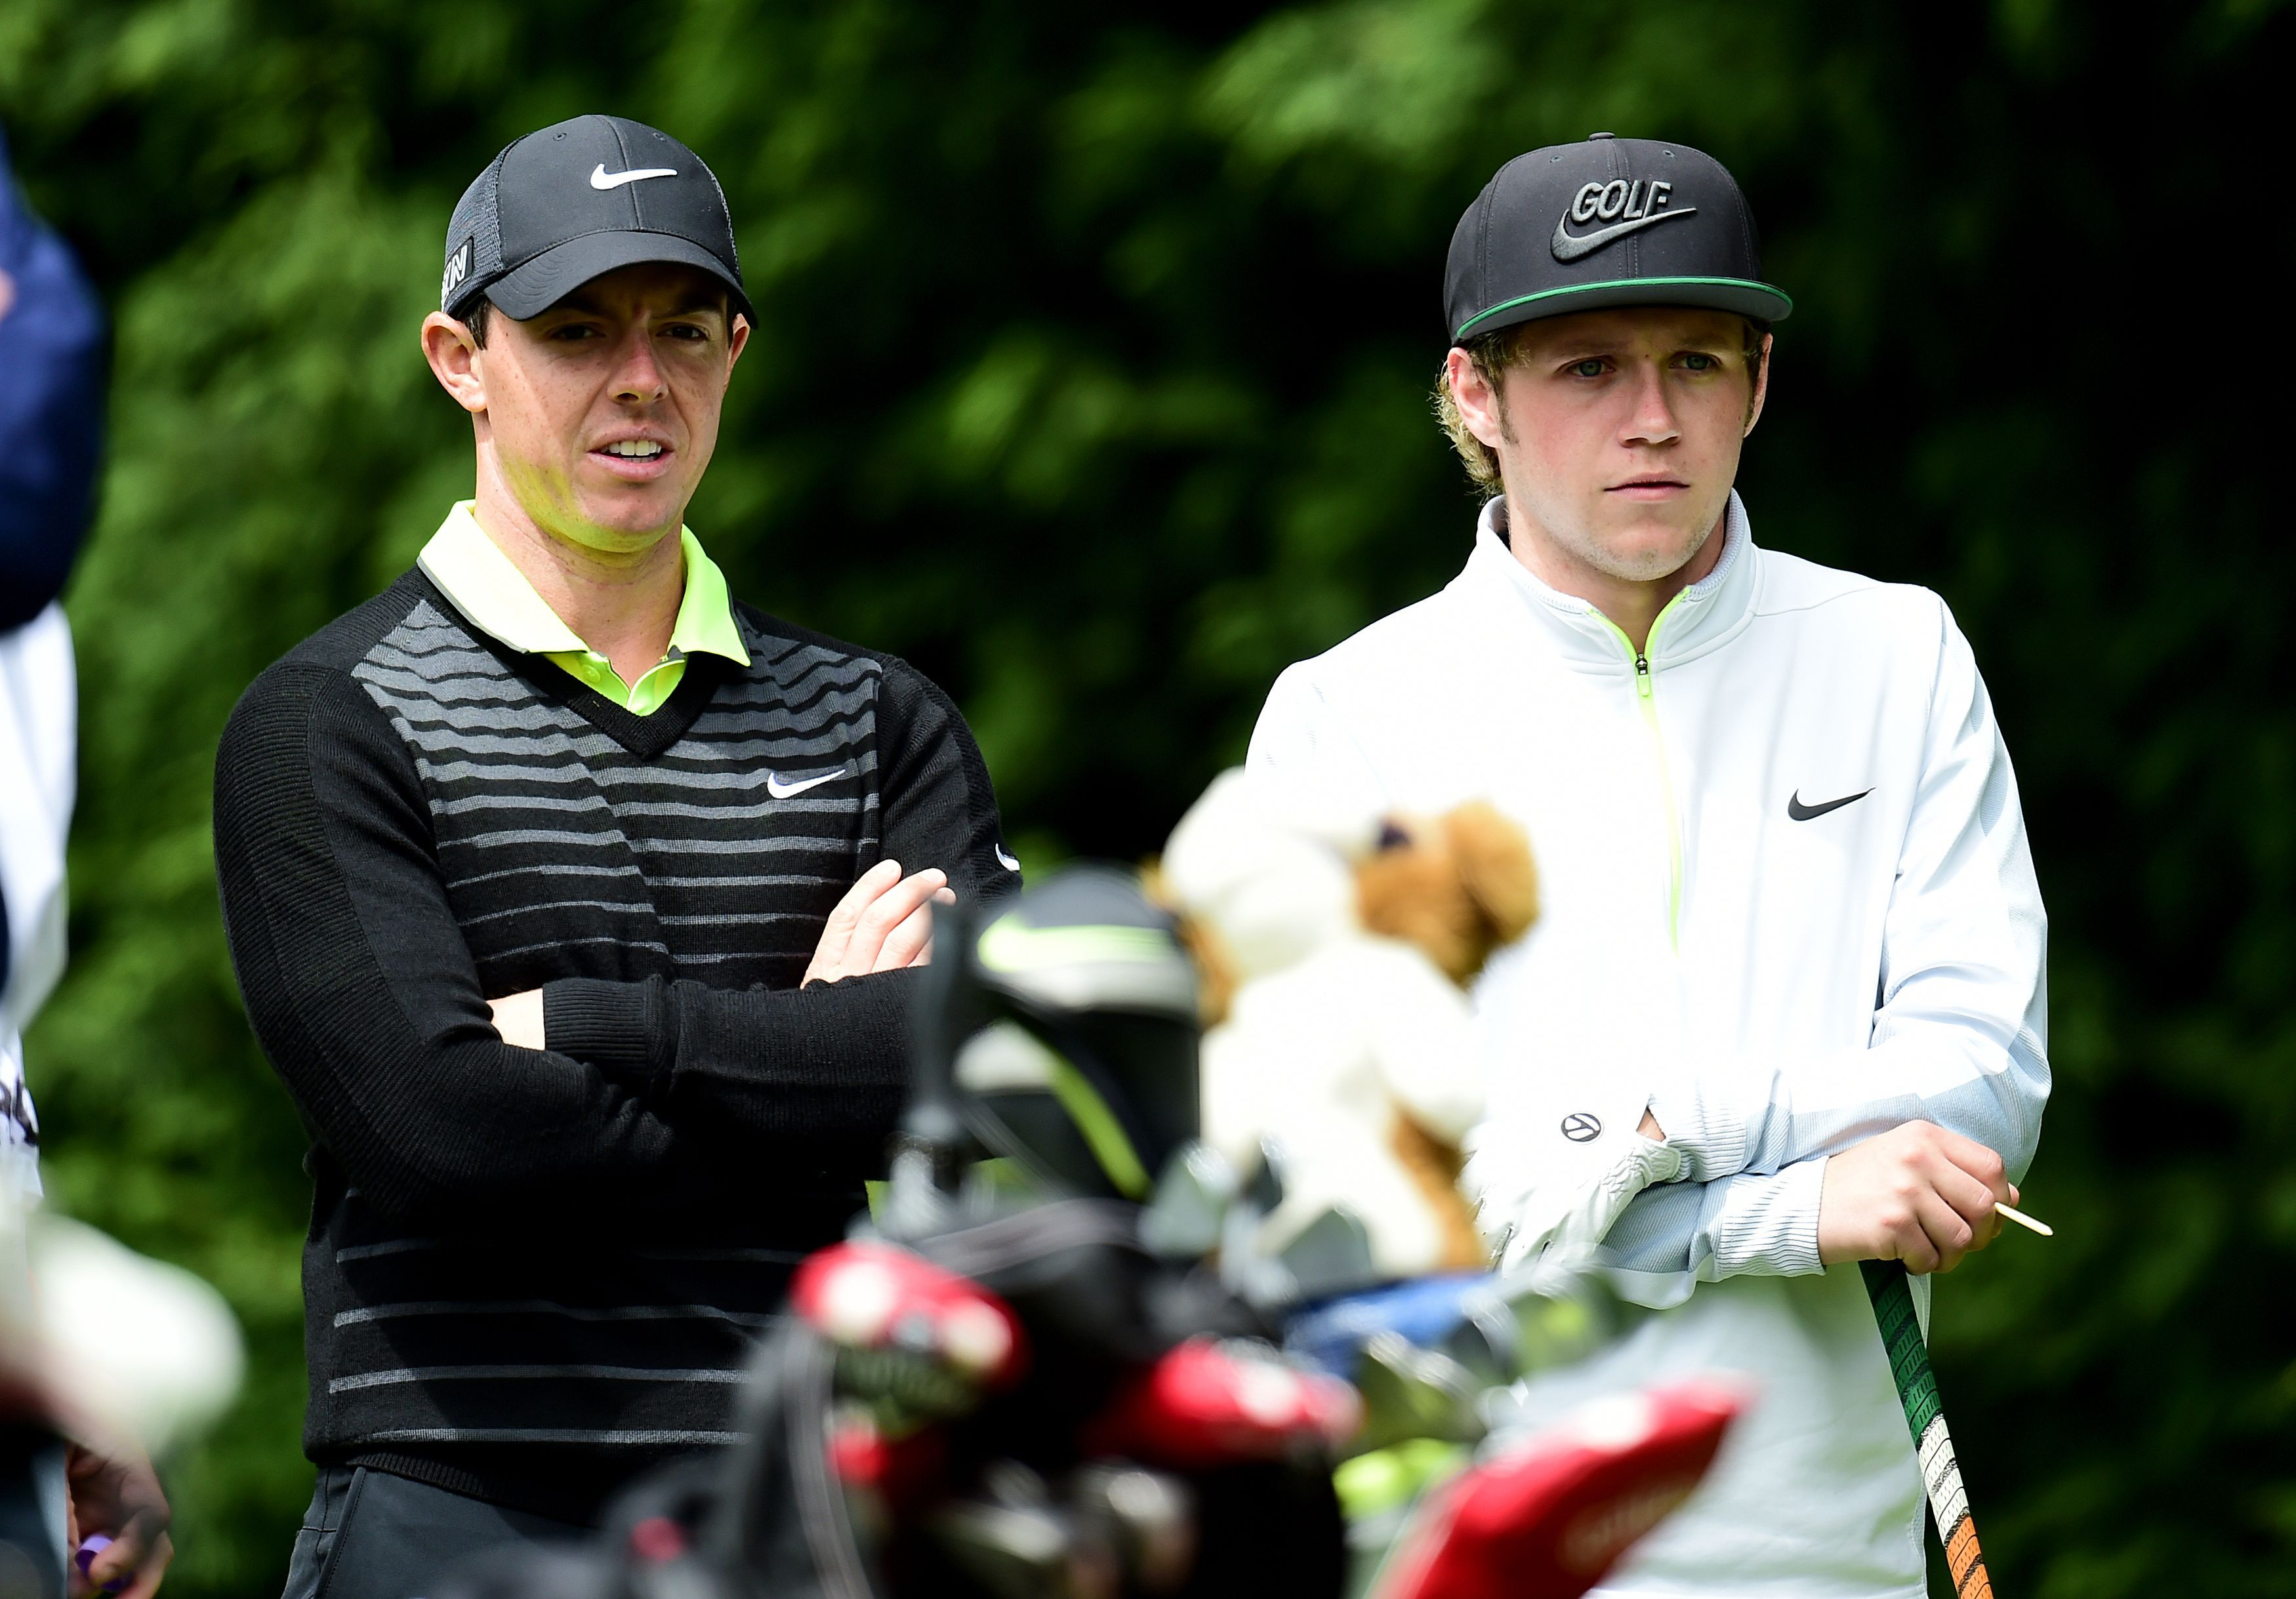 Northern Ireland's Rory McIlroy, right, plays with Niall Horan from One Direction during the Pro-Am at the 2015 BMW PGA Championship at the Wentworth Golf Club, Surrey, England, Wednesday, May 20, 2015. (Adam Davy/PA via AP)     UNITED KINGDOM OUT     -